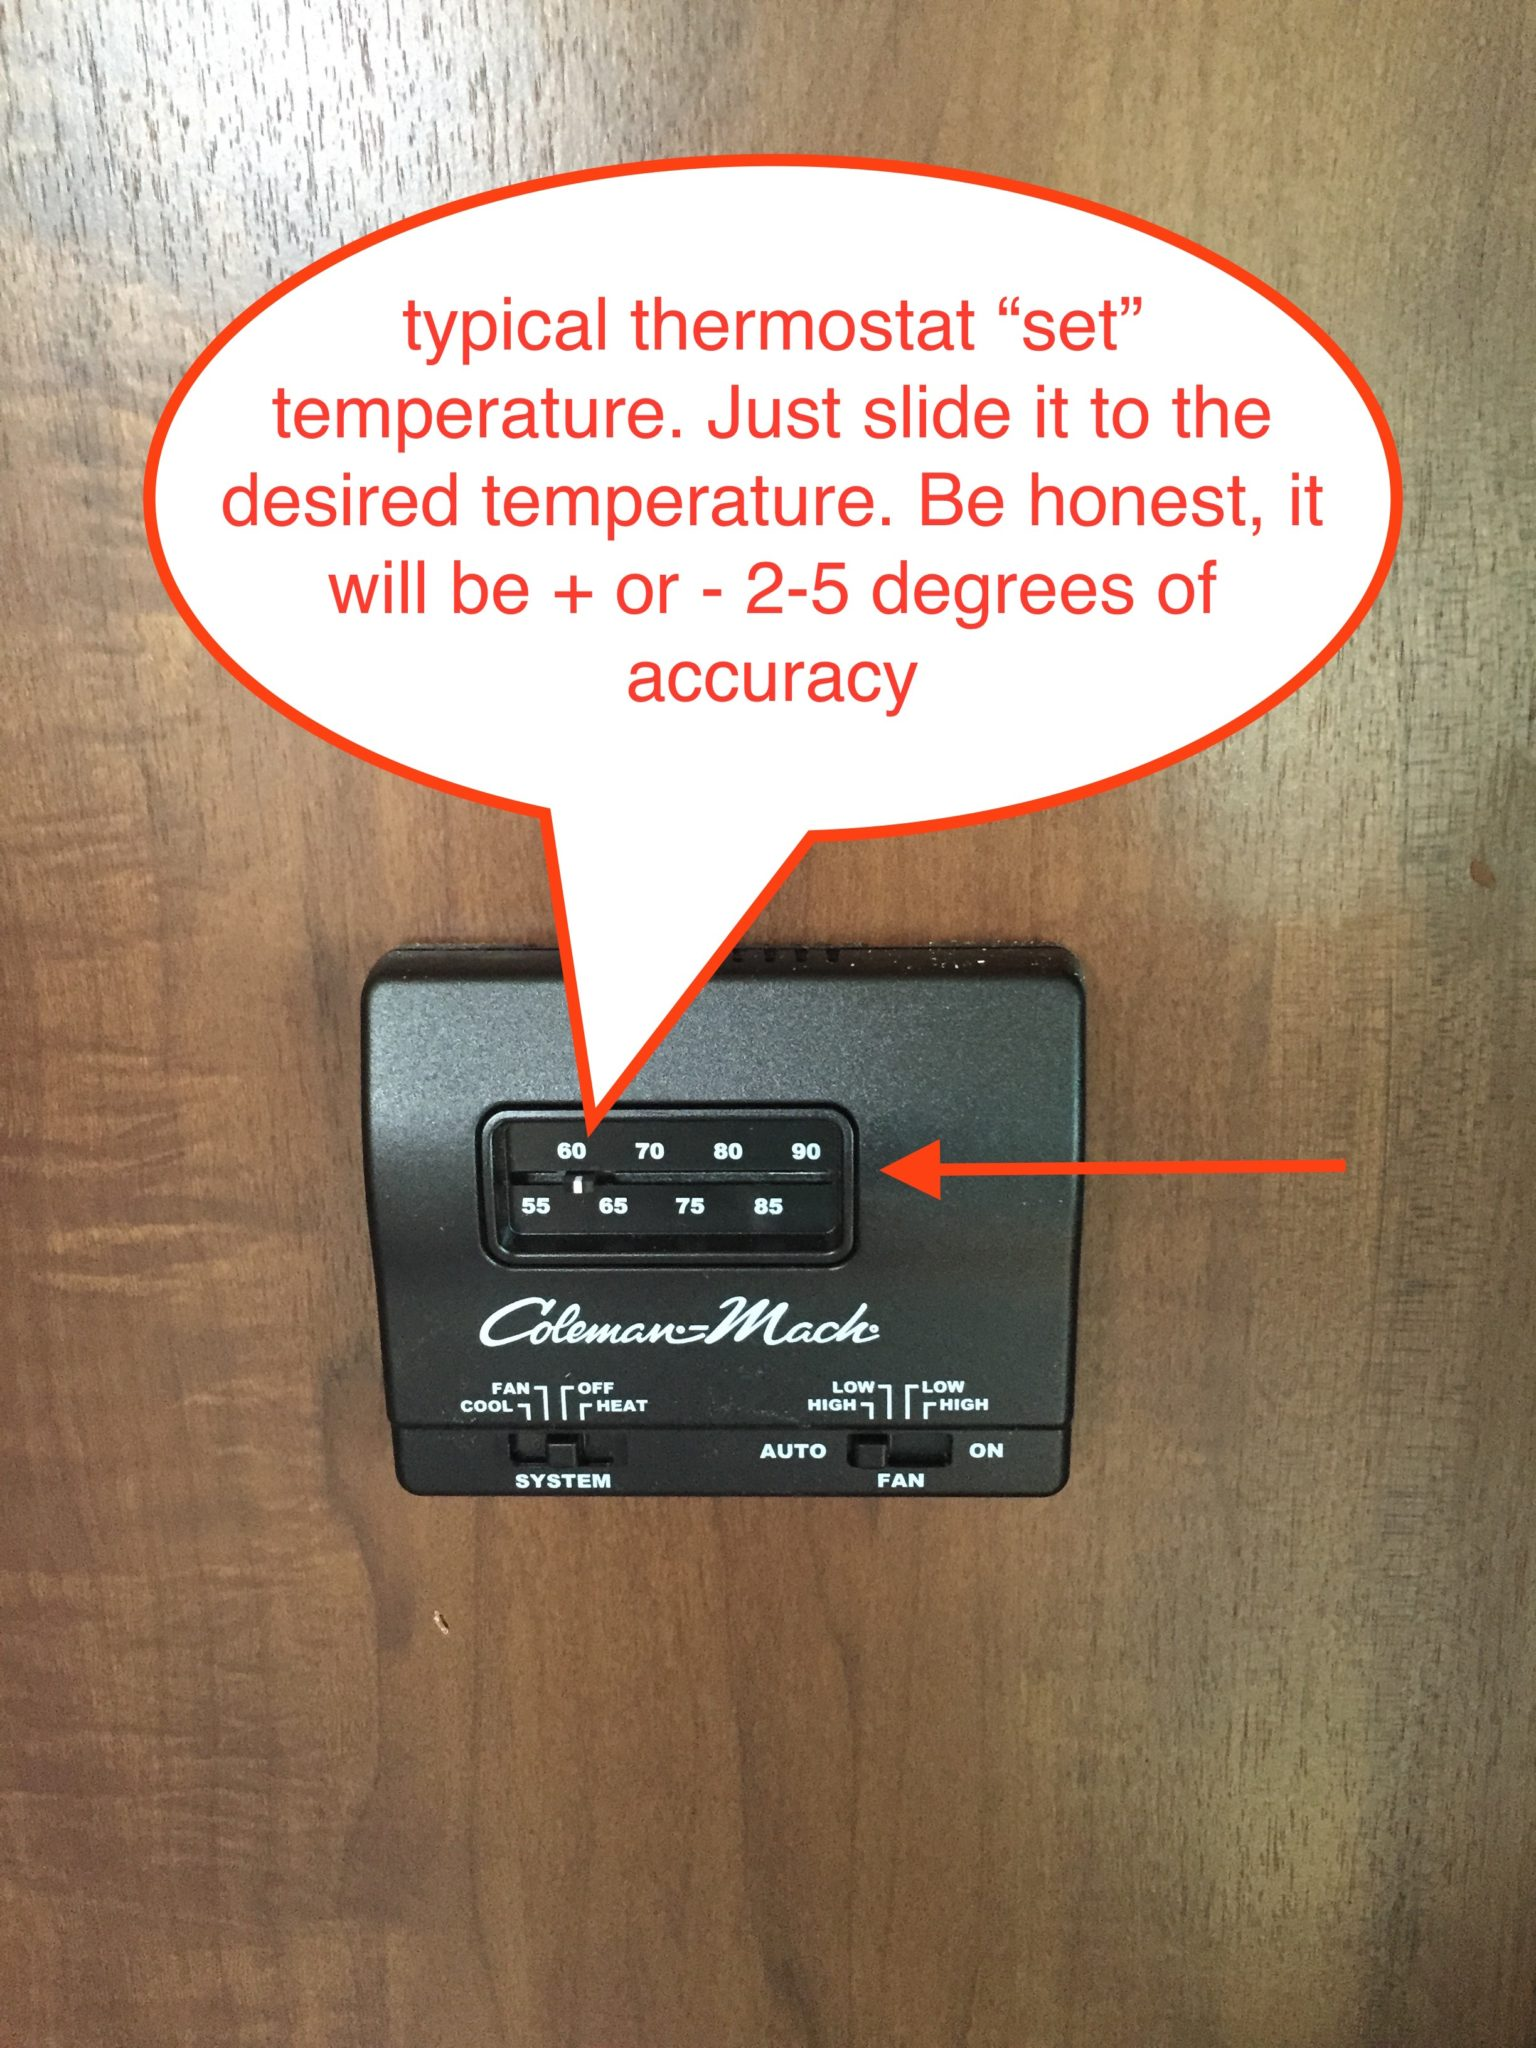 hight resolution of  jayco travel trailer thermostat set temperature